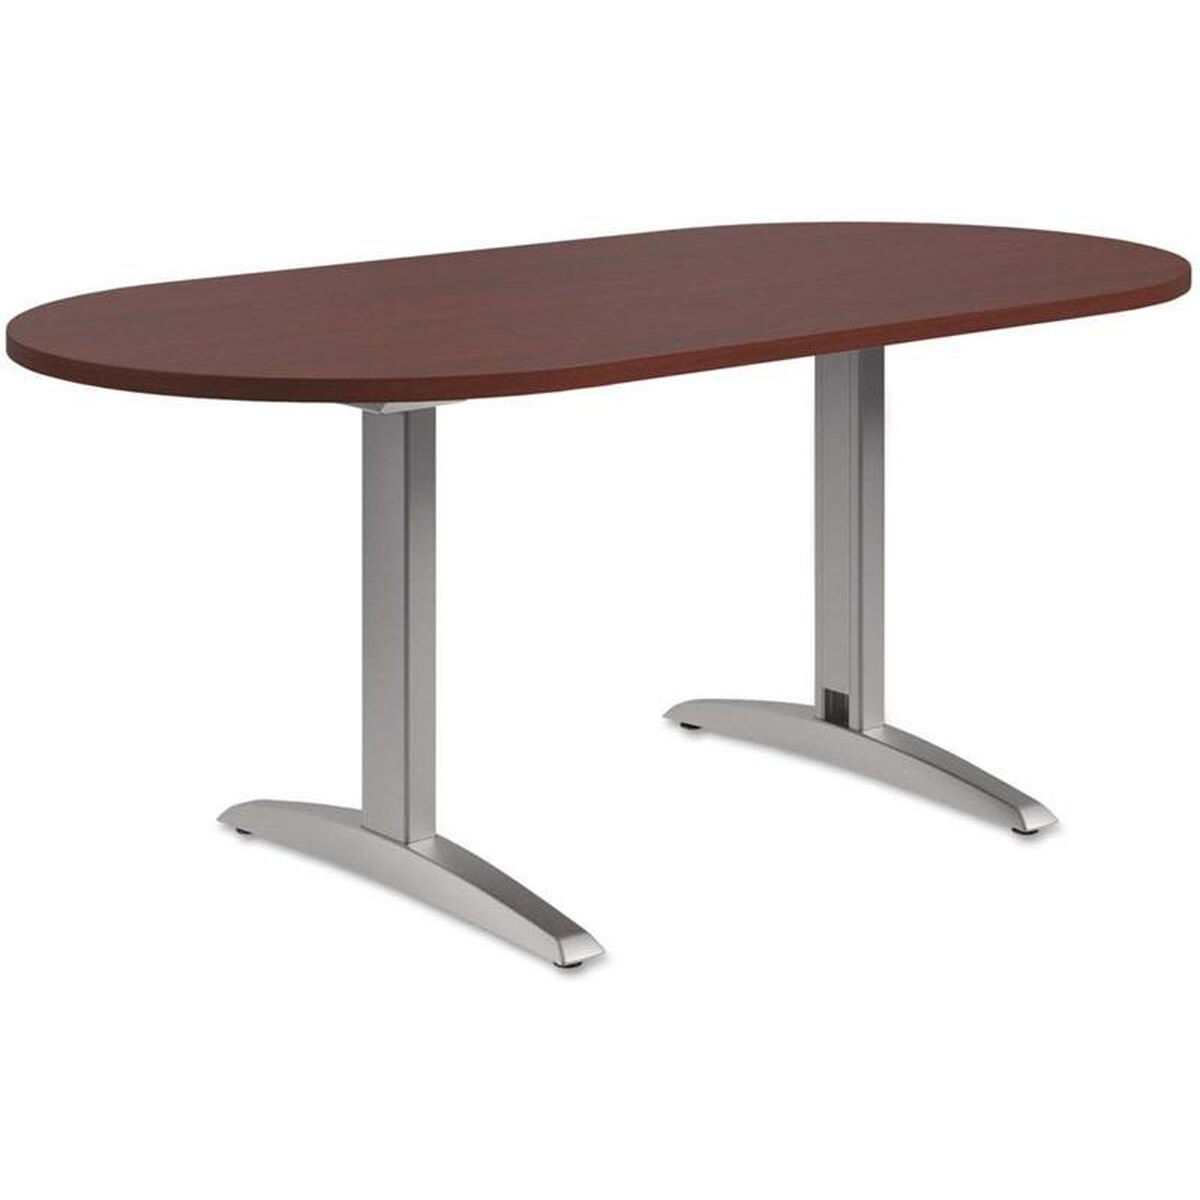 Racetrack Conference Table Top HONTLAGNNN ChurchChairsLesscom - Hon racetrack conference table